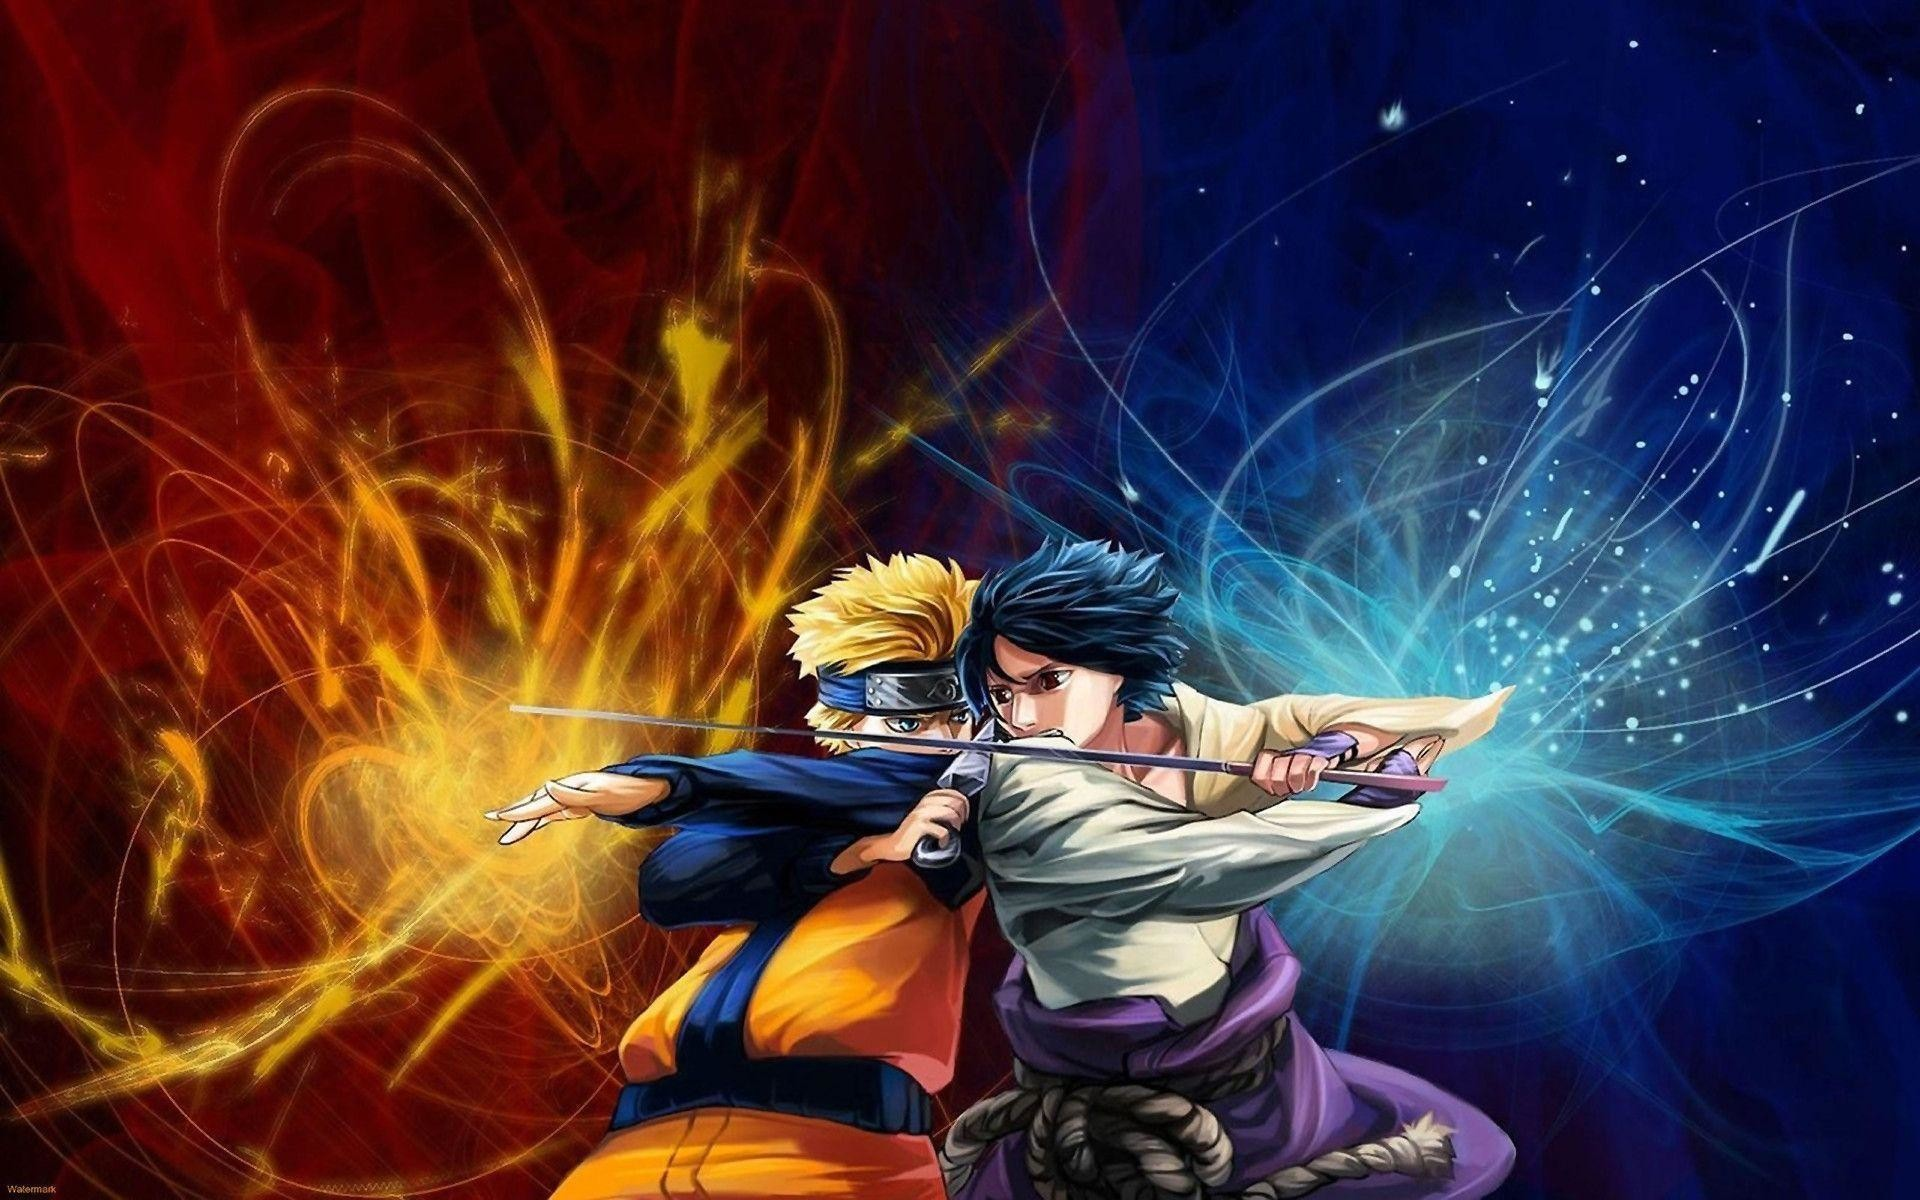 Simple Wallpaper Naruto Windows 10 - 617025-download-sasuke-and-naruto-wallpaper-1920x1200-for-windows-10  2018.jpg